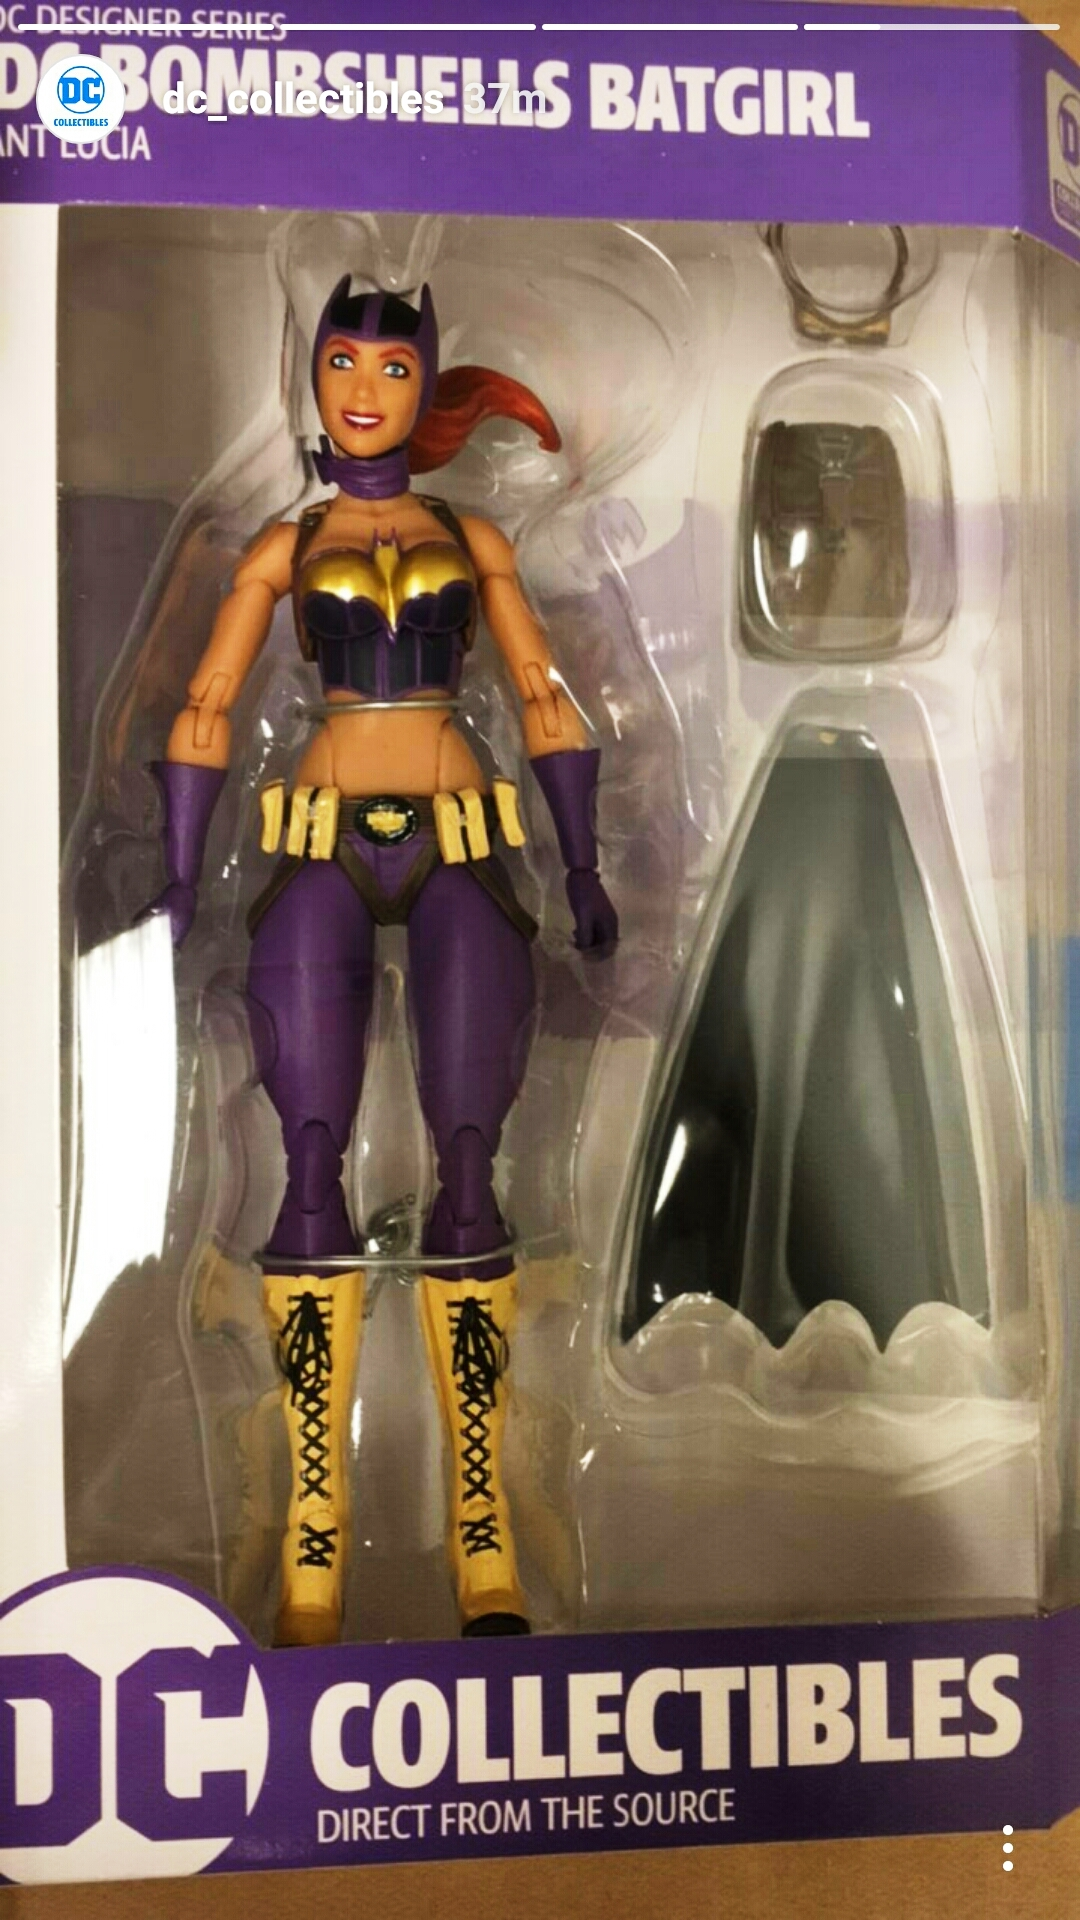 DC Bombshells ~ BATGIRL ACTION FIGURE ~ DC Collectibles Ant Lucia